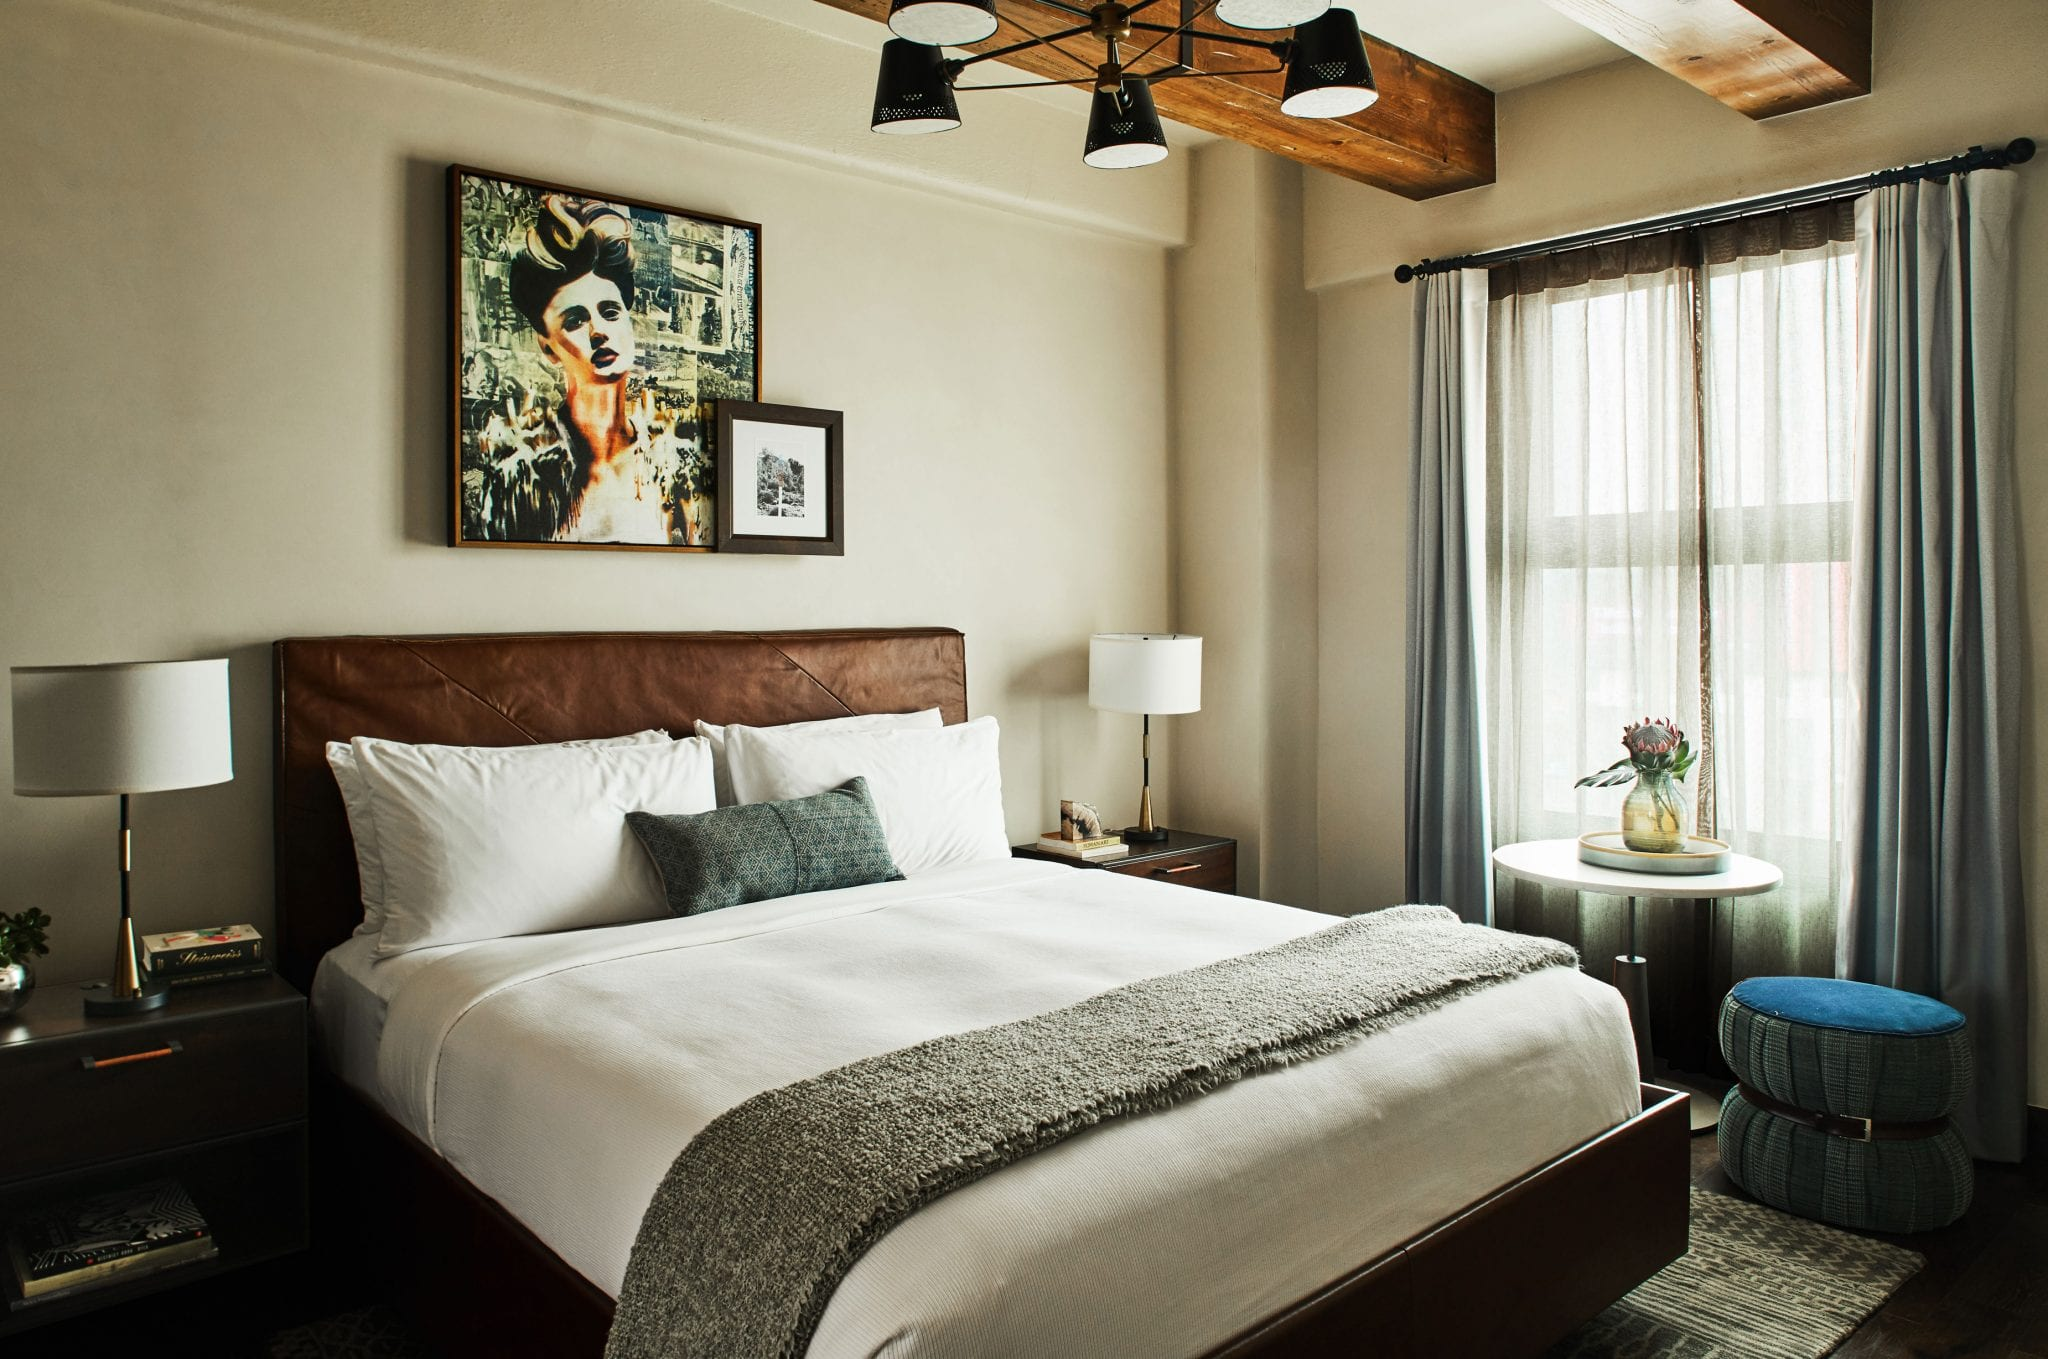 hotel room with bed, nightstands and large window